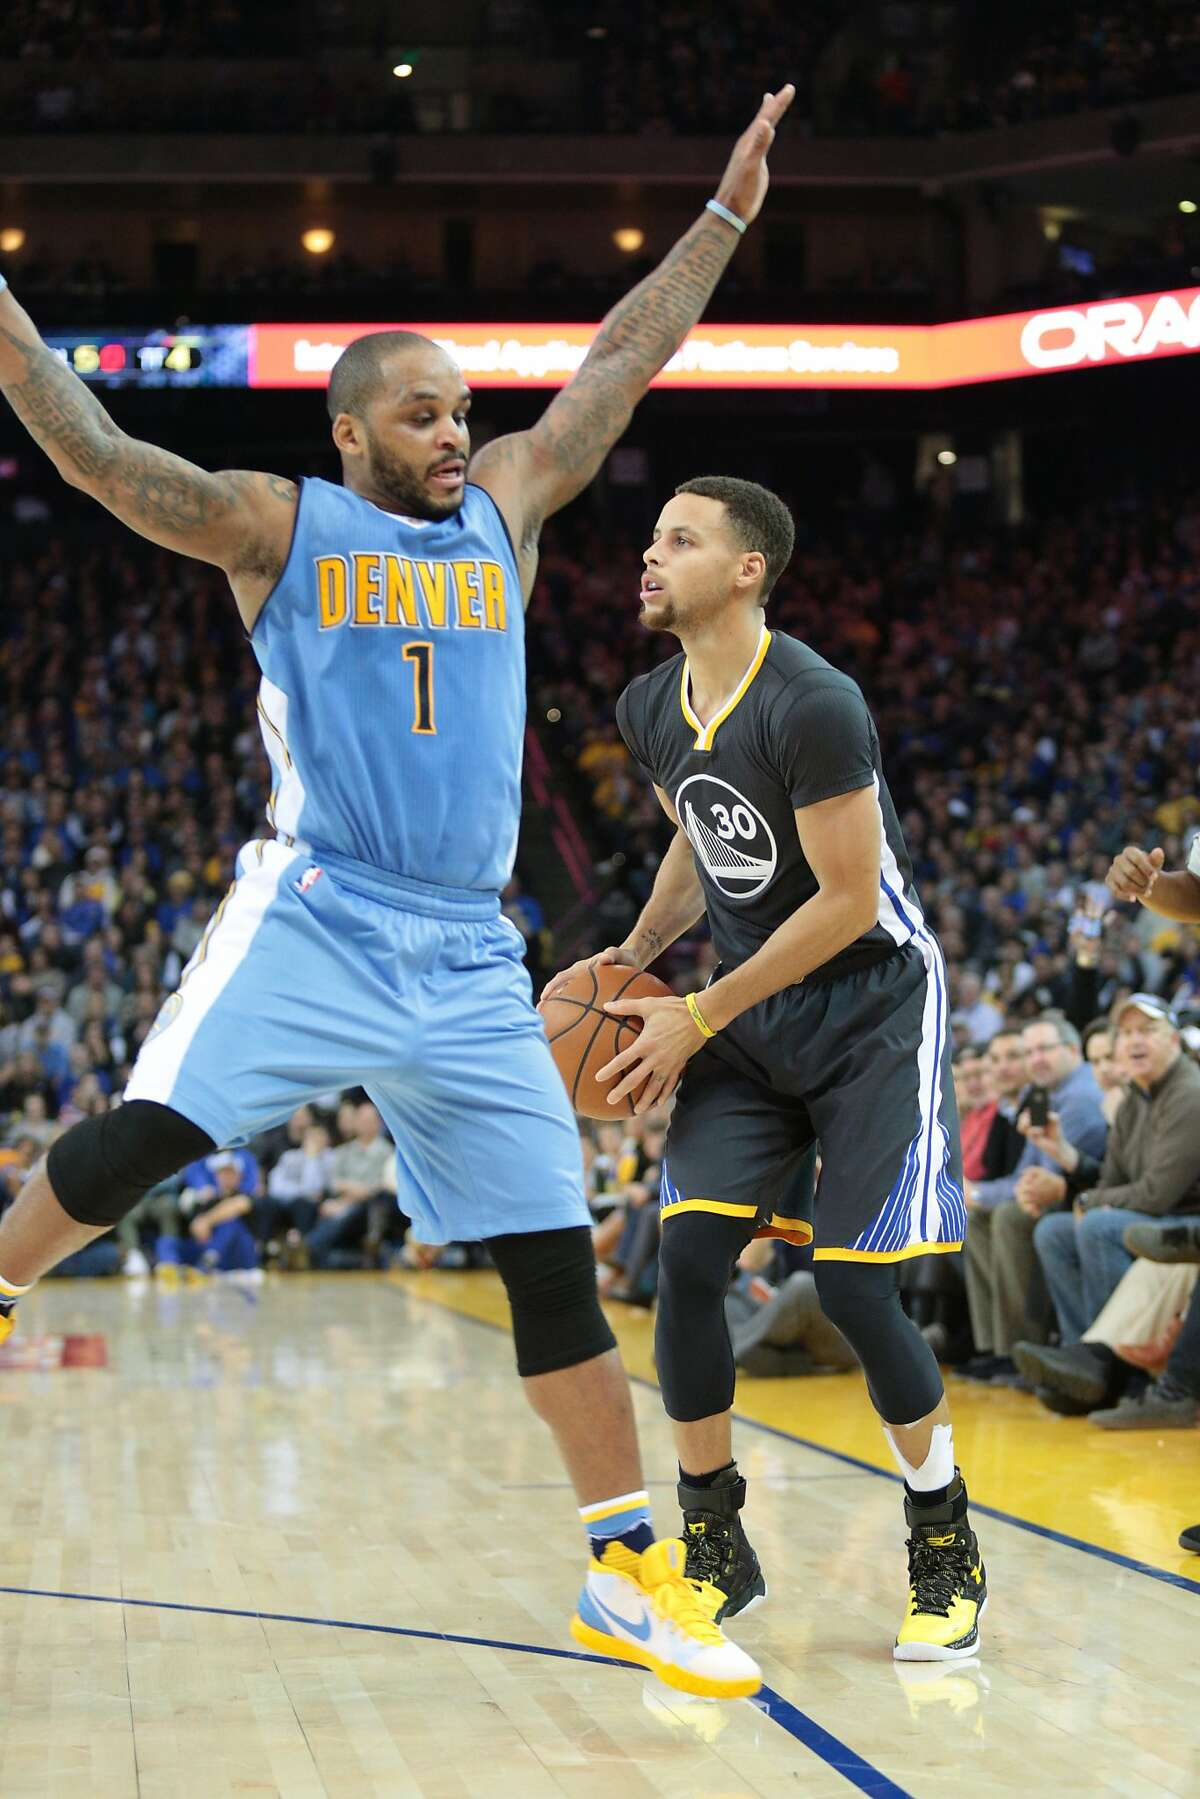 Golden State Warriors guard Stephen Curry (30) fakes a shot against Denver Nuggets guard Jameer Nelson (1) during the first half of an NBA basketball game, Saturday, Jan. 2, 2016, at Oracle Arena in Oakland, Calif.